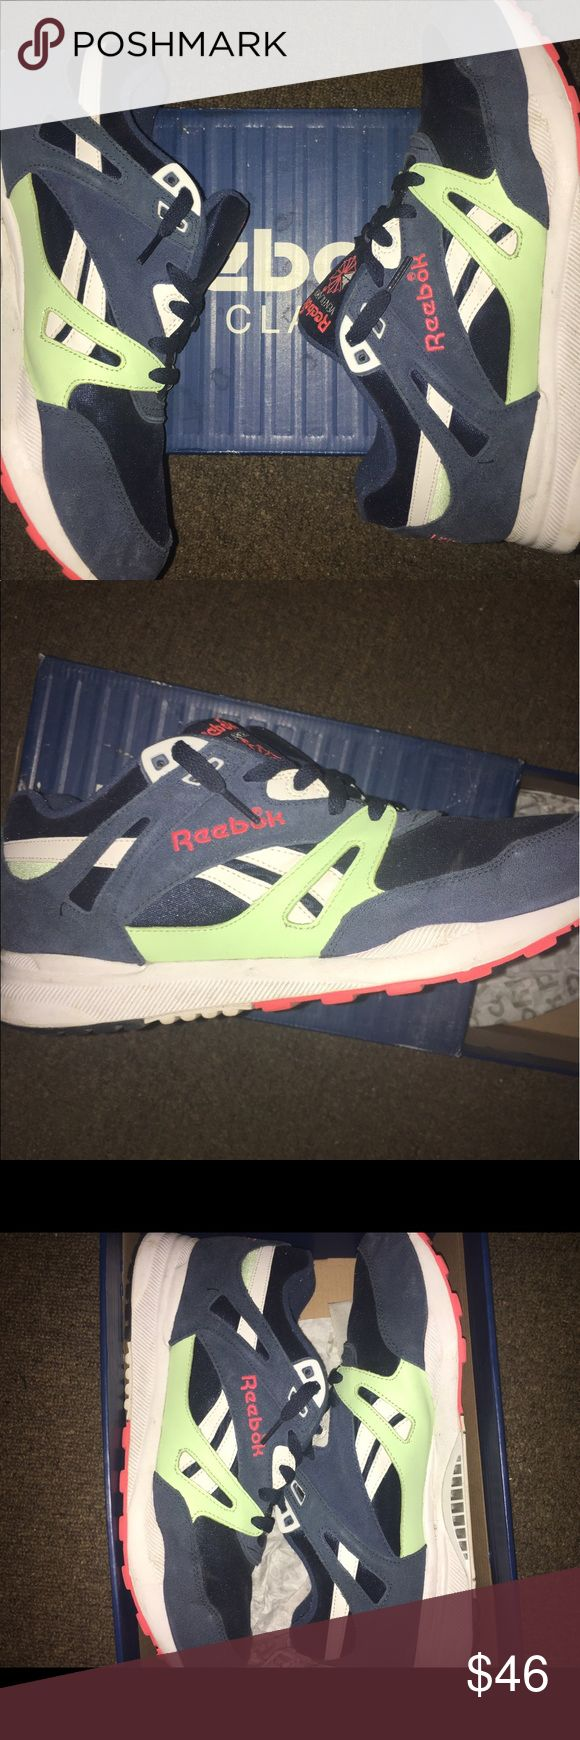 REEBOK VENTILATOR Reebok Ventilator, worn a couple times still in great condition, great for the spring/summer weather, great comfortable sneaker perfect for walking, running and being stylish. Comes in original box Reebok Shoes Sneakers